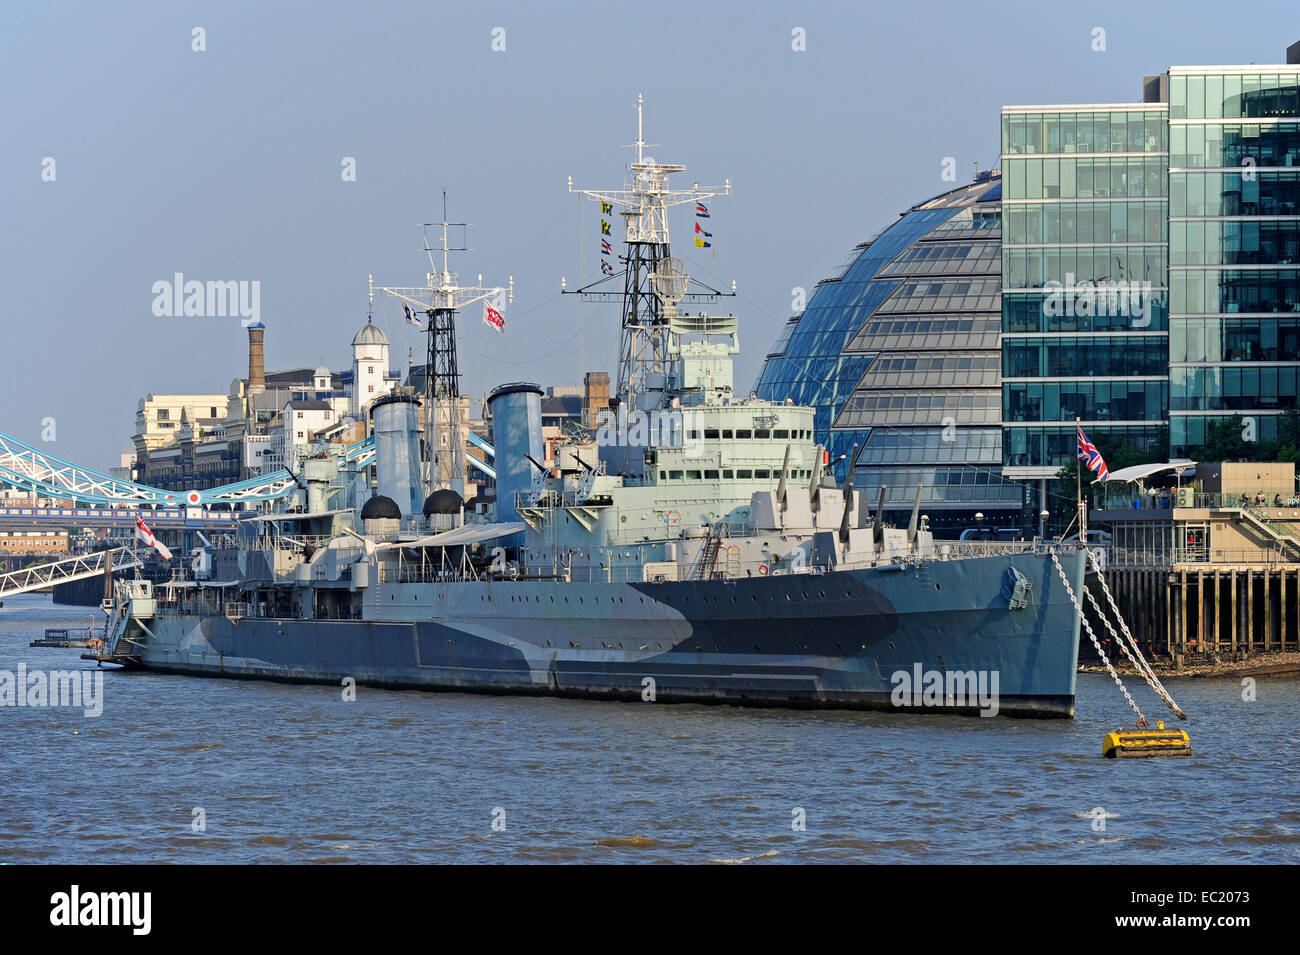 HMS Belfast museum ship of the Imperial War Museum, River Thames, South Bank, London, England, United Kingdom - Stock Image